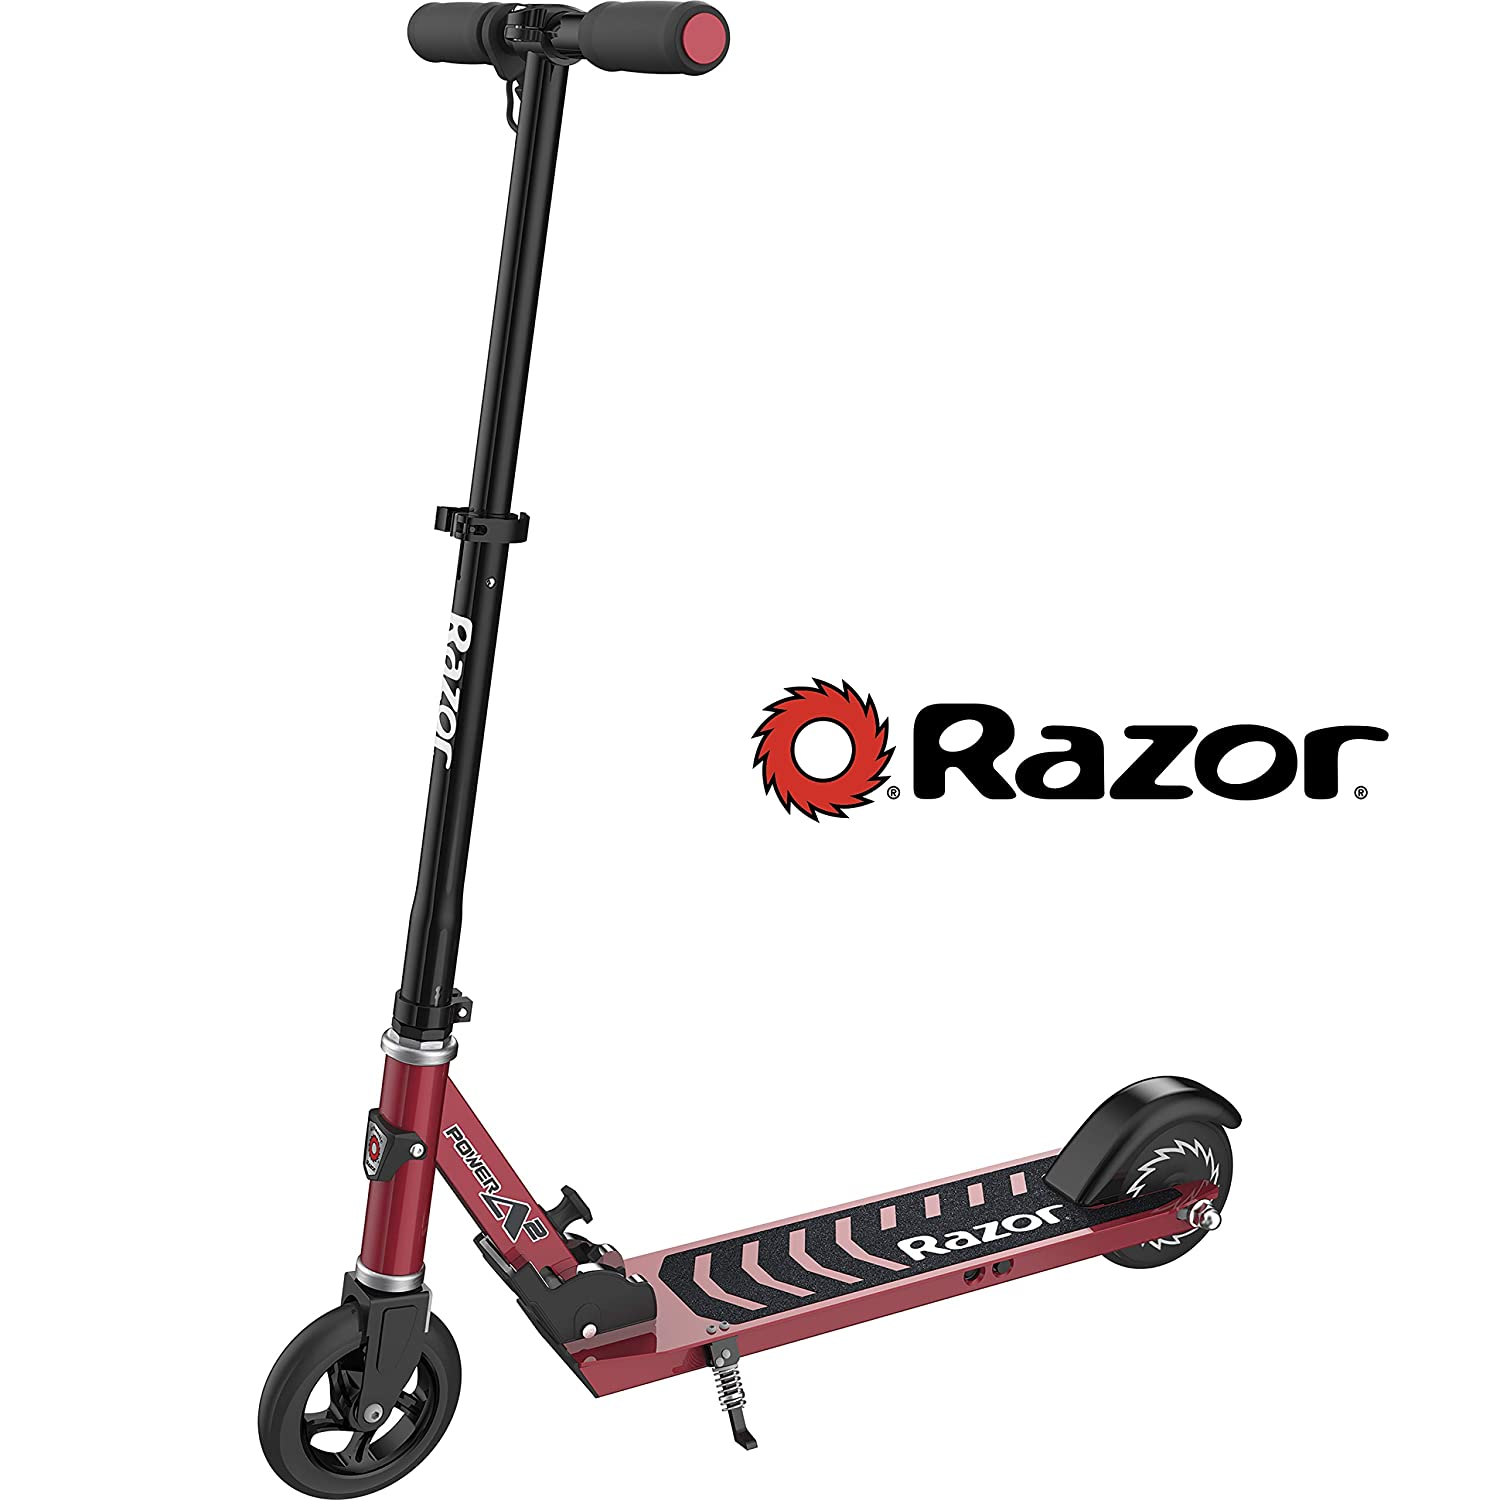 Amazon.com: Razor Power A2 - Patinete eléctrico, color rojo ...